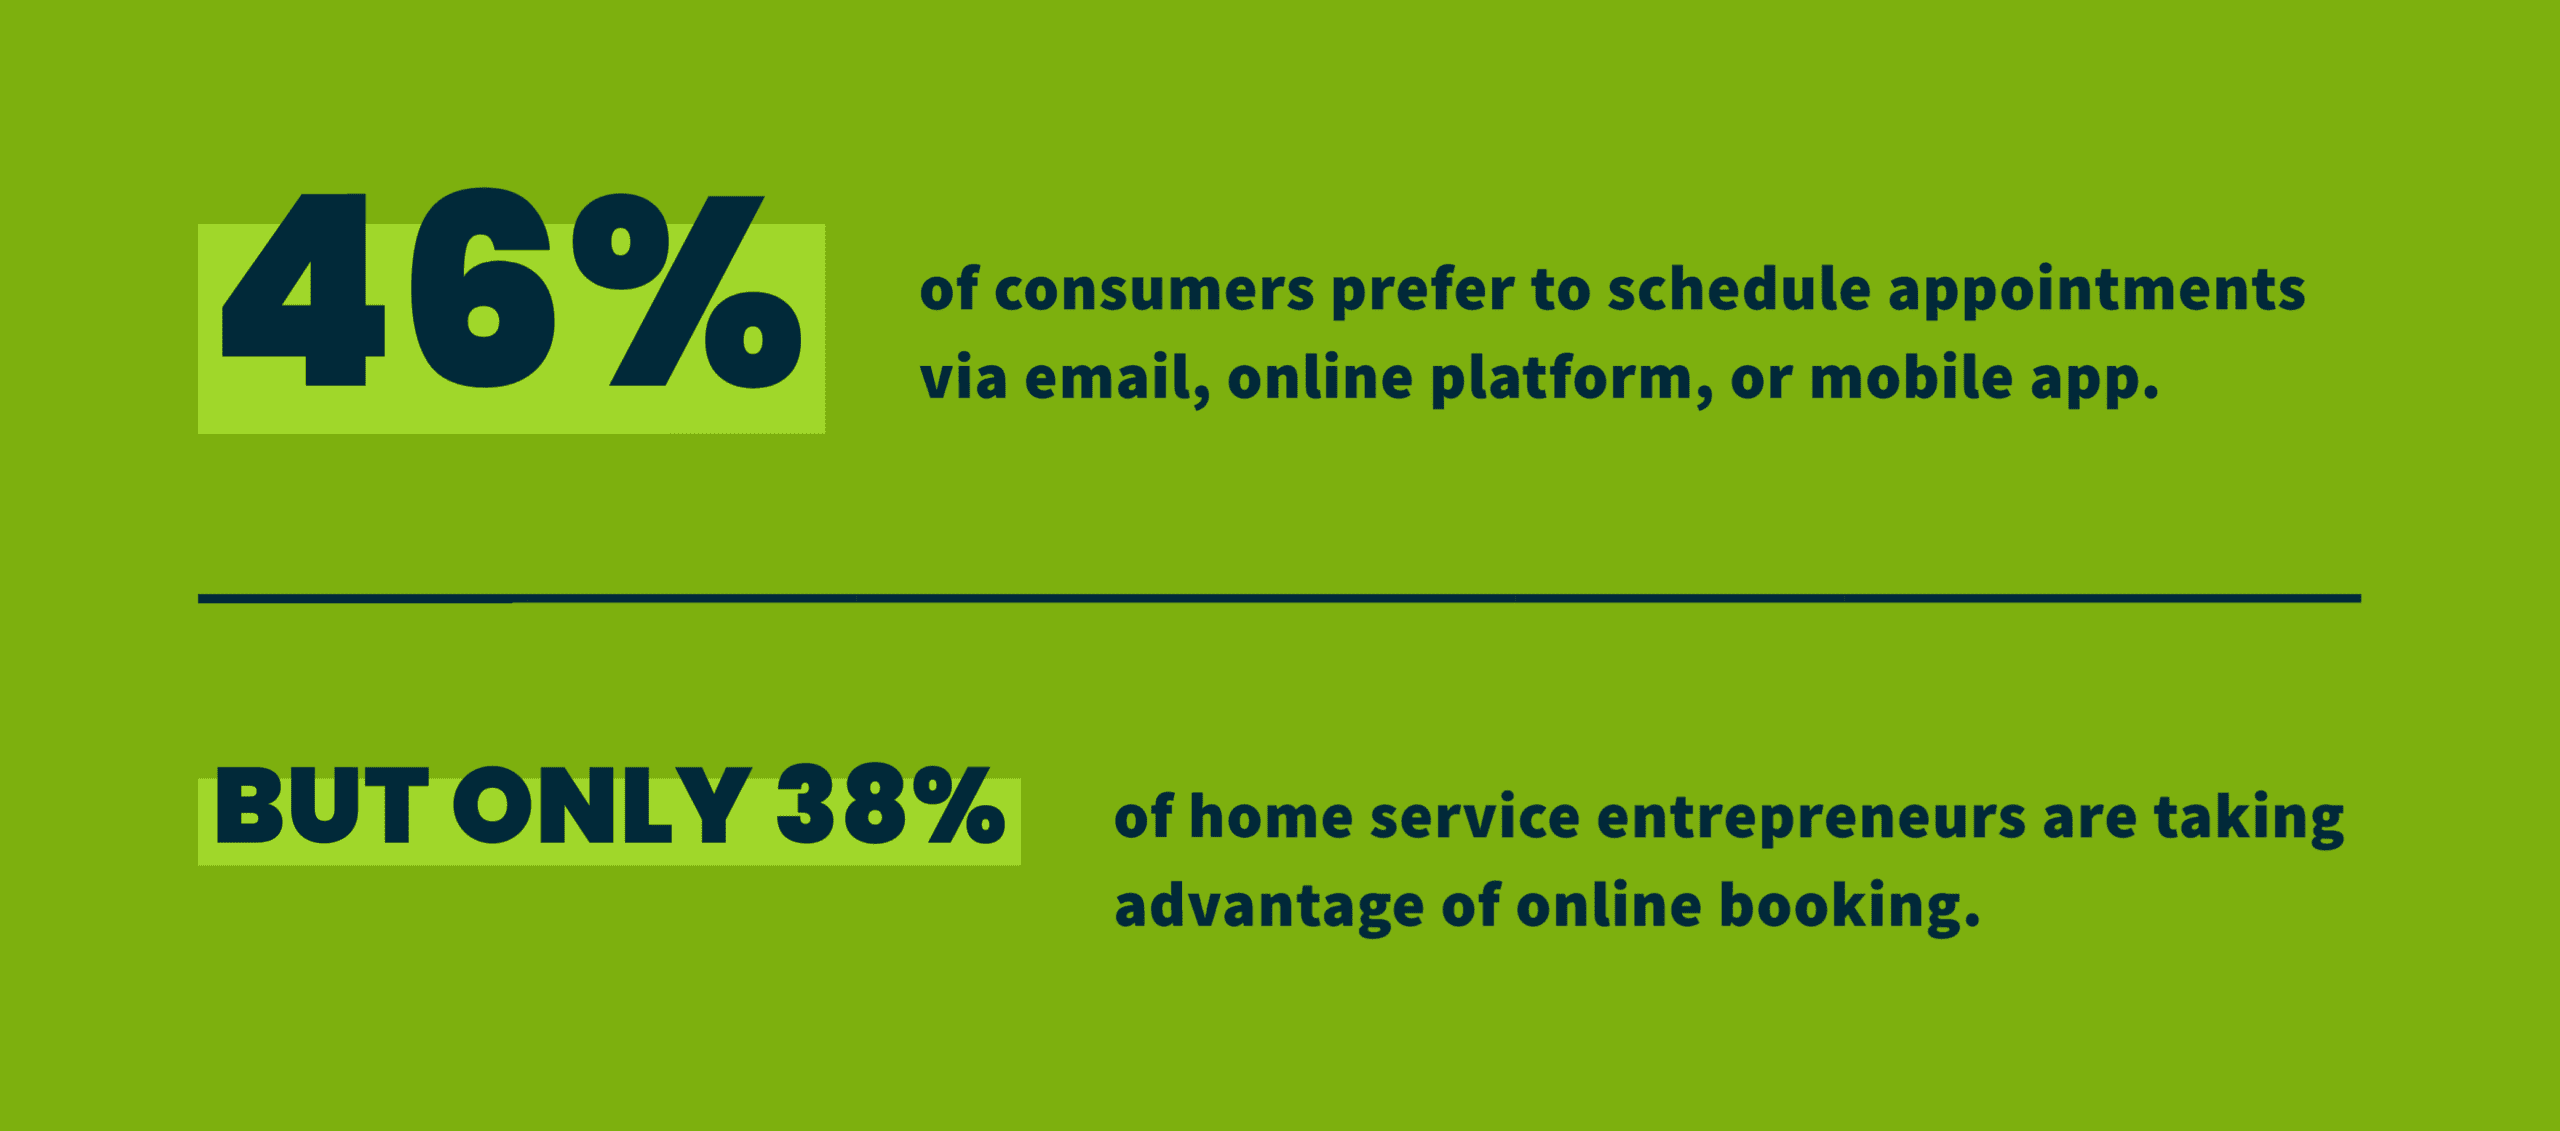 Home Service Industry Trend Report 2020 - Online Booking